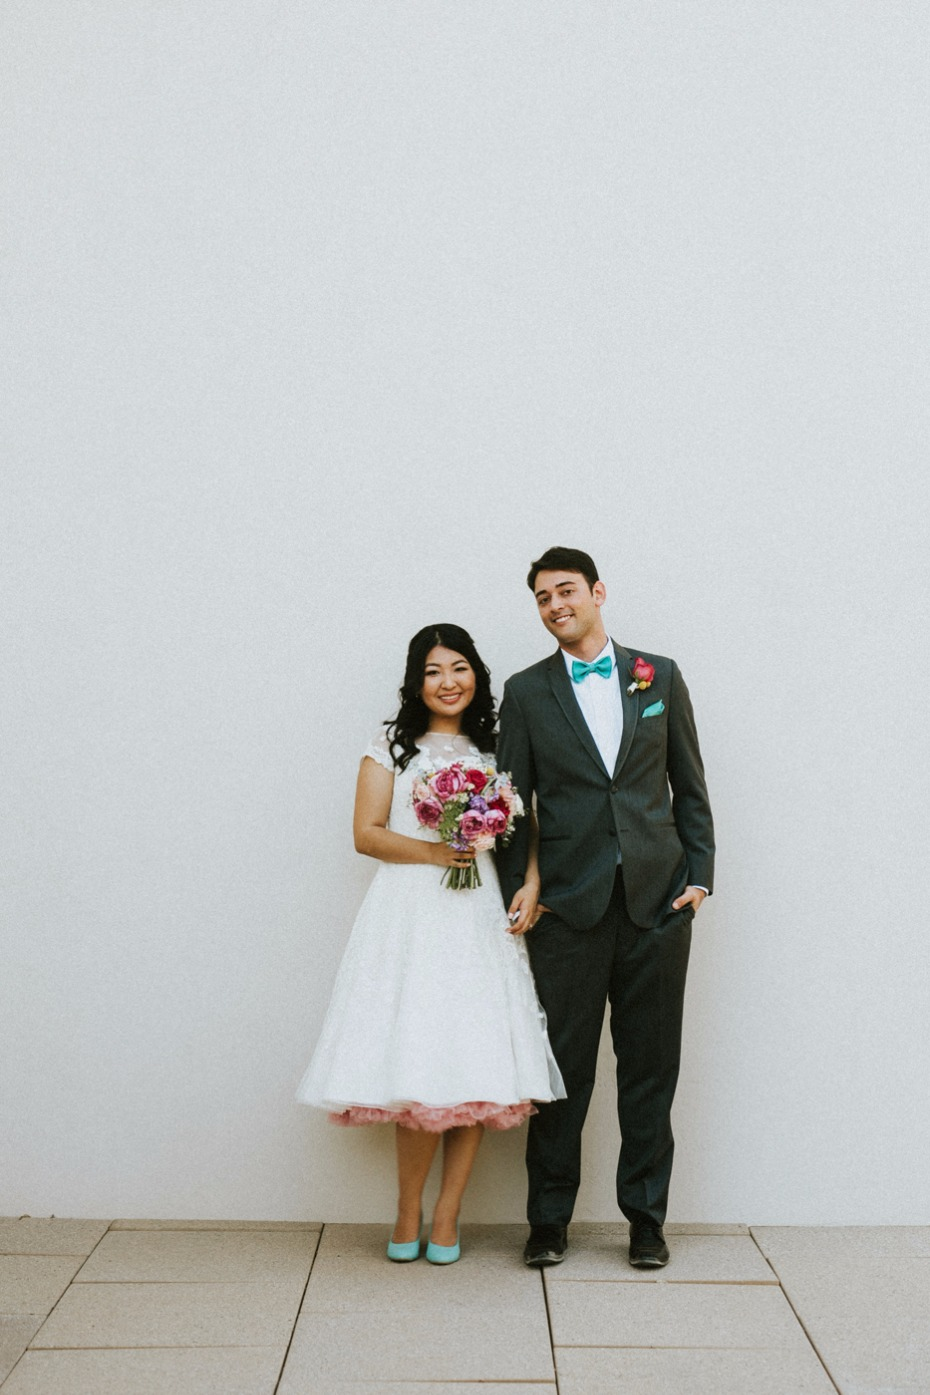 Cute and colorful wedding